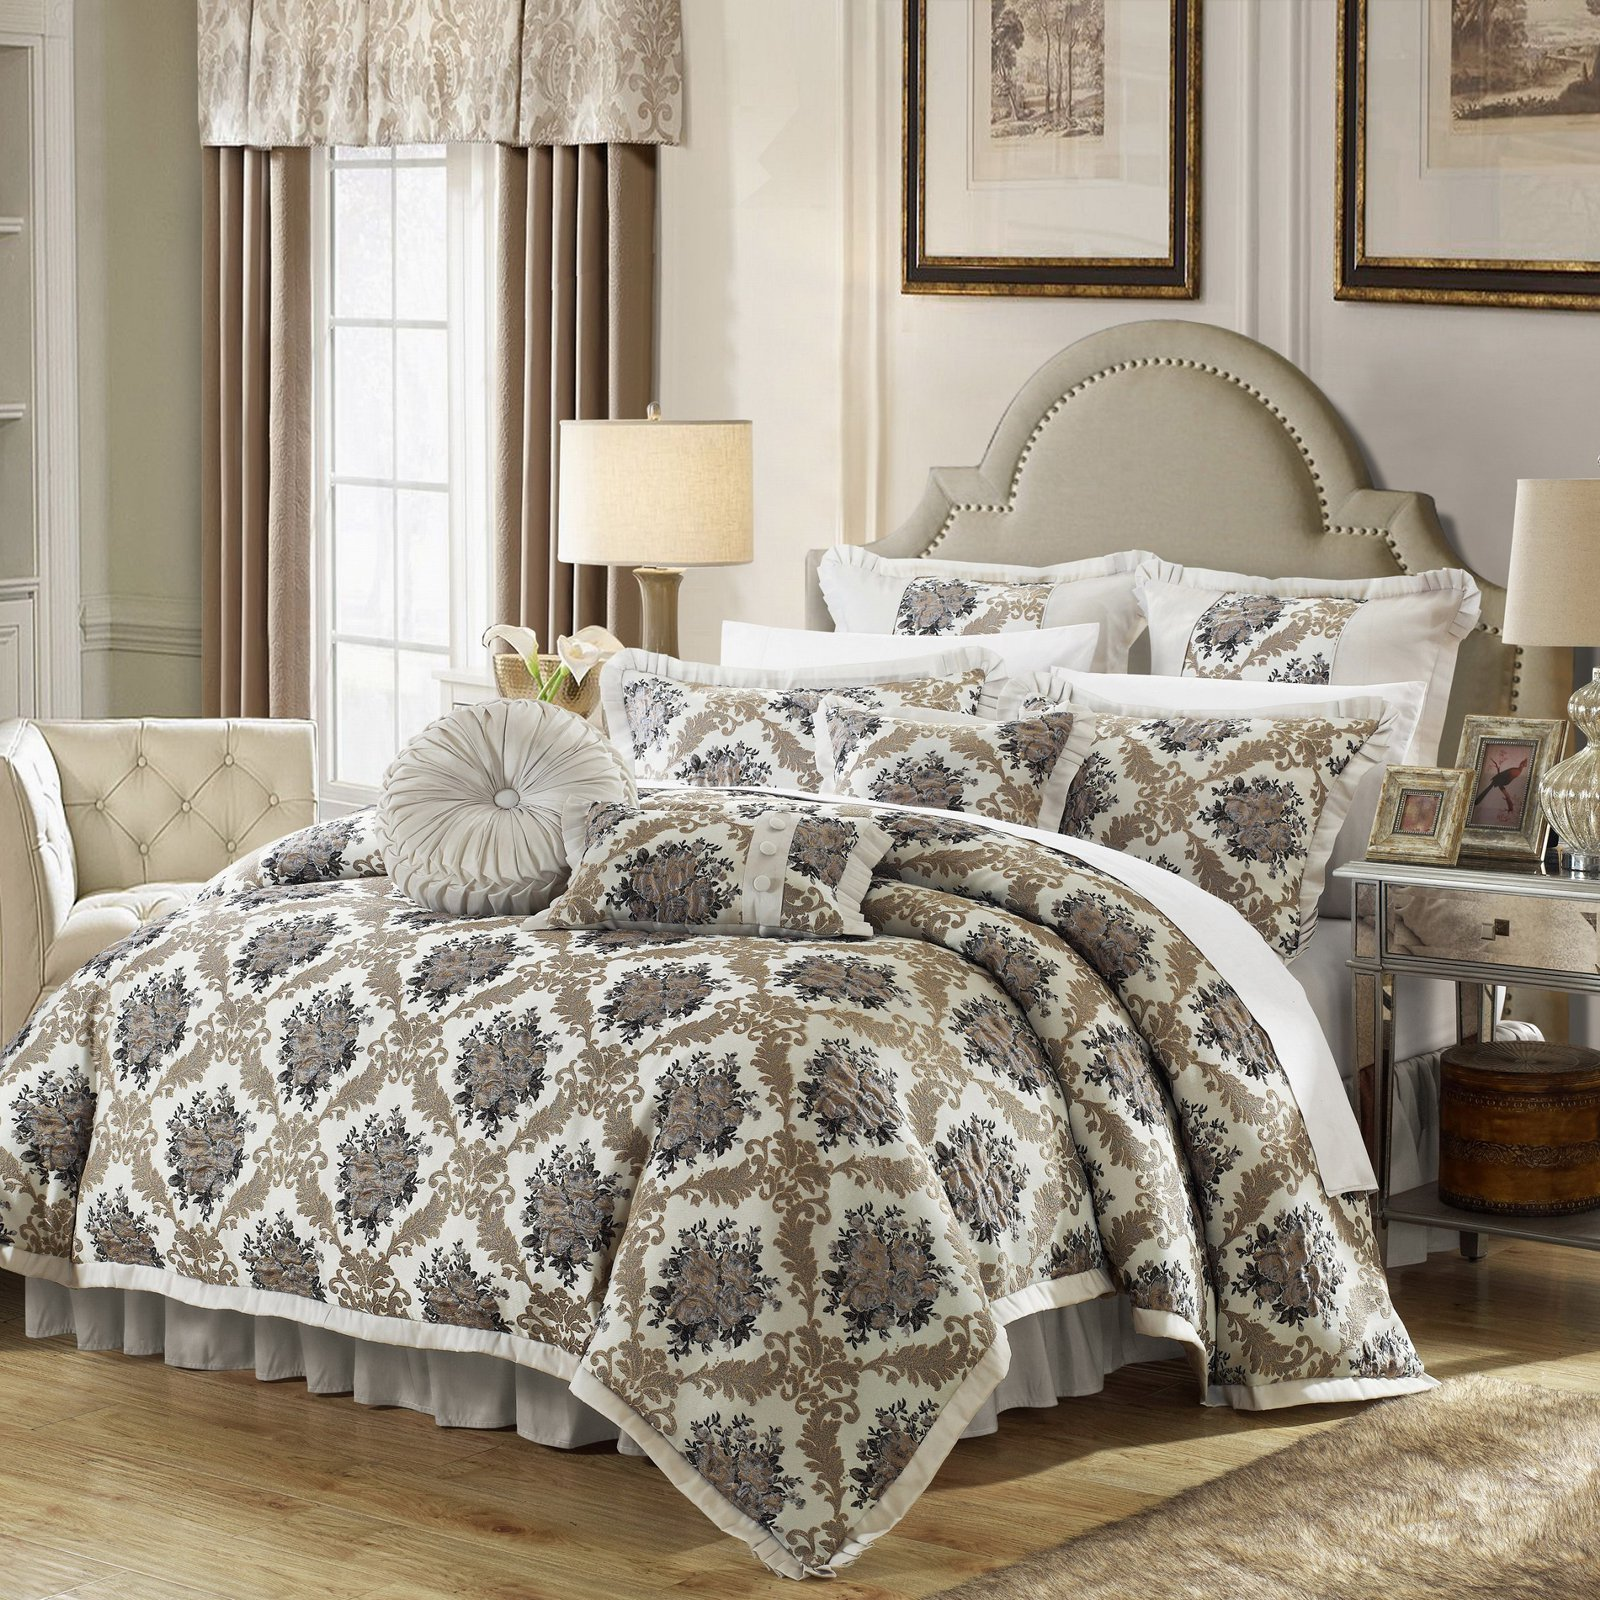 Chic Home 9-Piece Zanotti Decorator Upholstery Quality Jacquard Floral Fabric Complete Master Bedroom Comforter Set